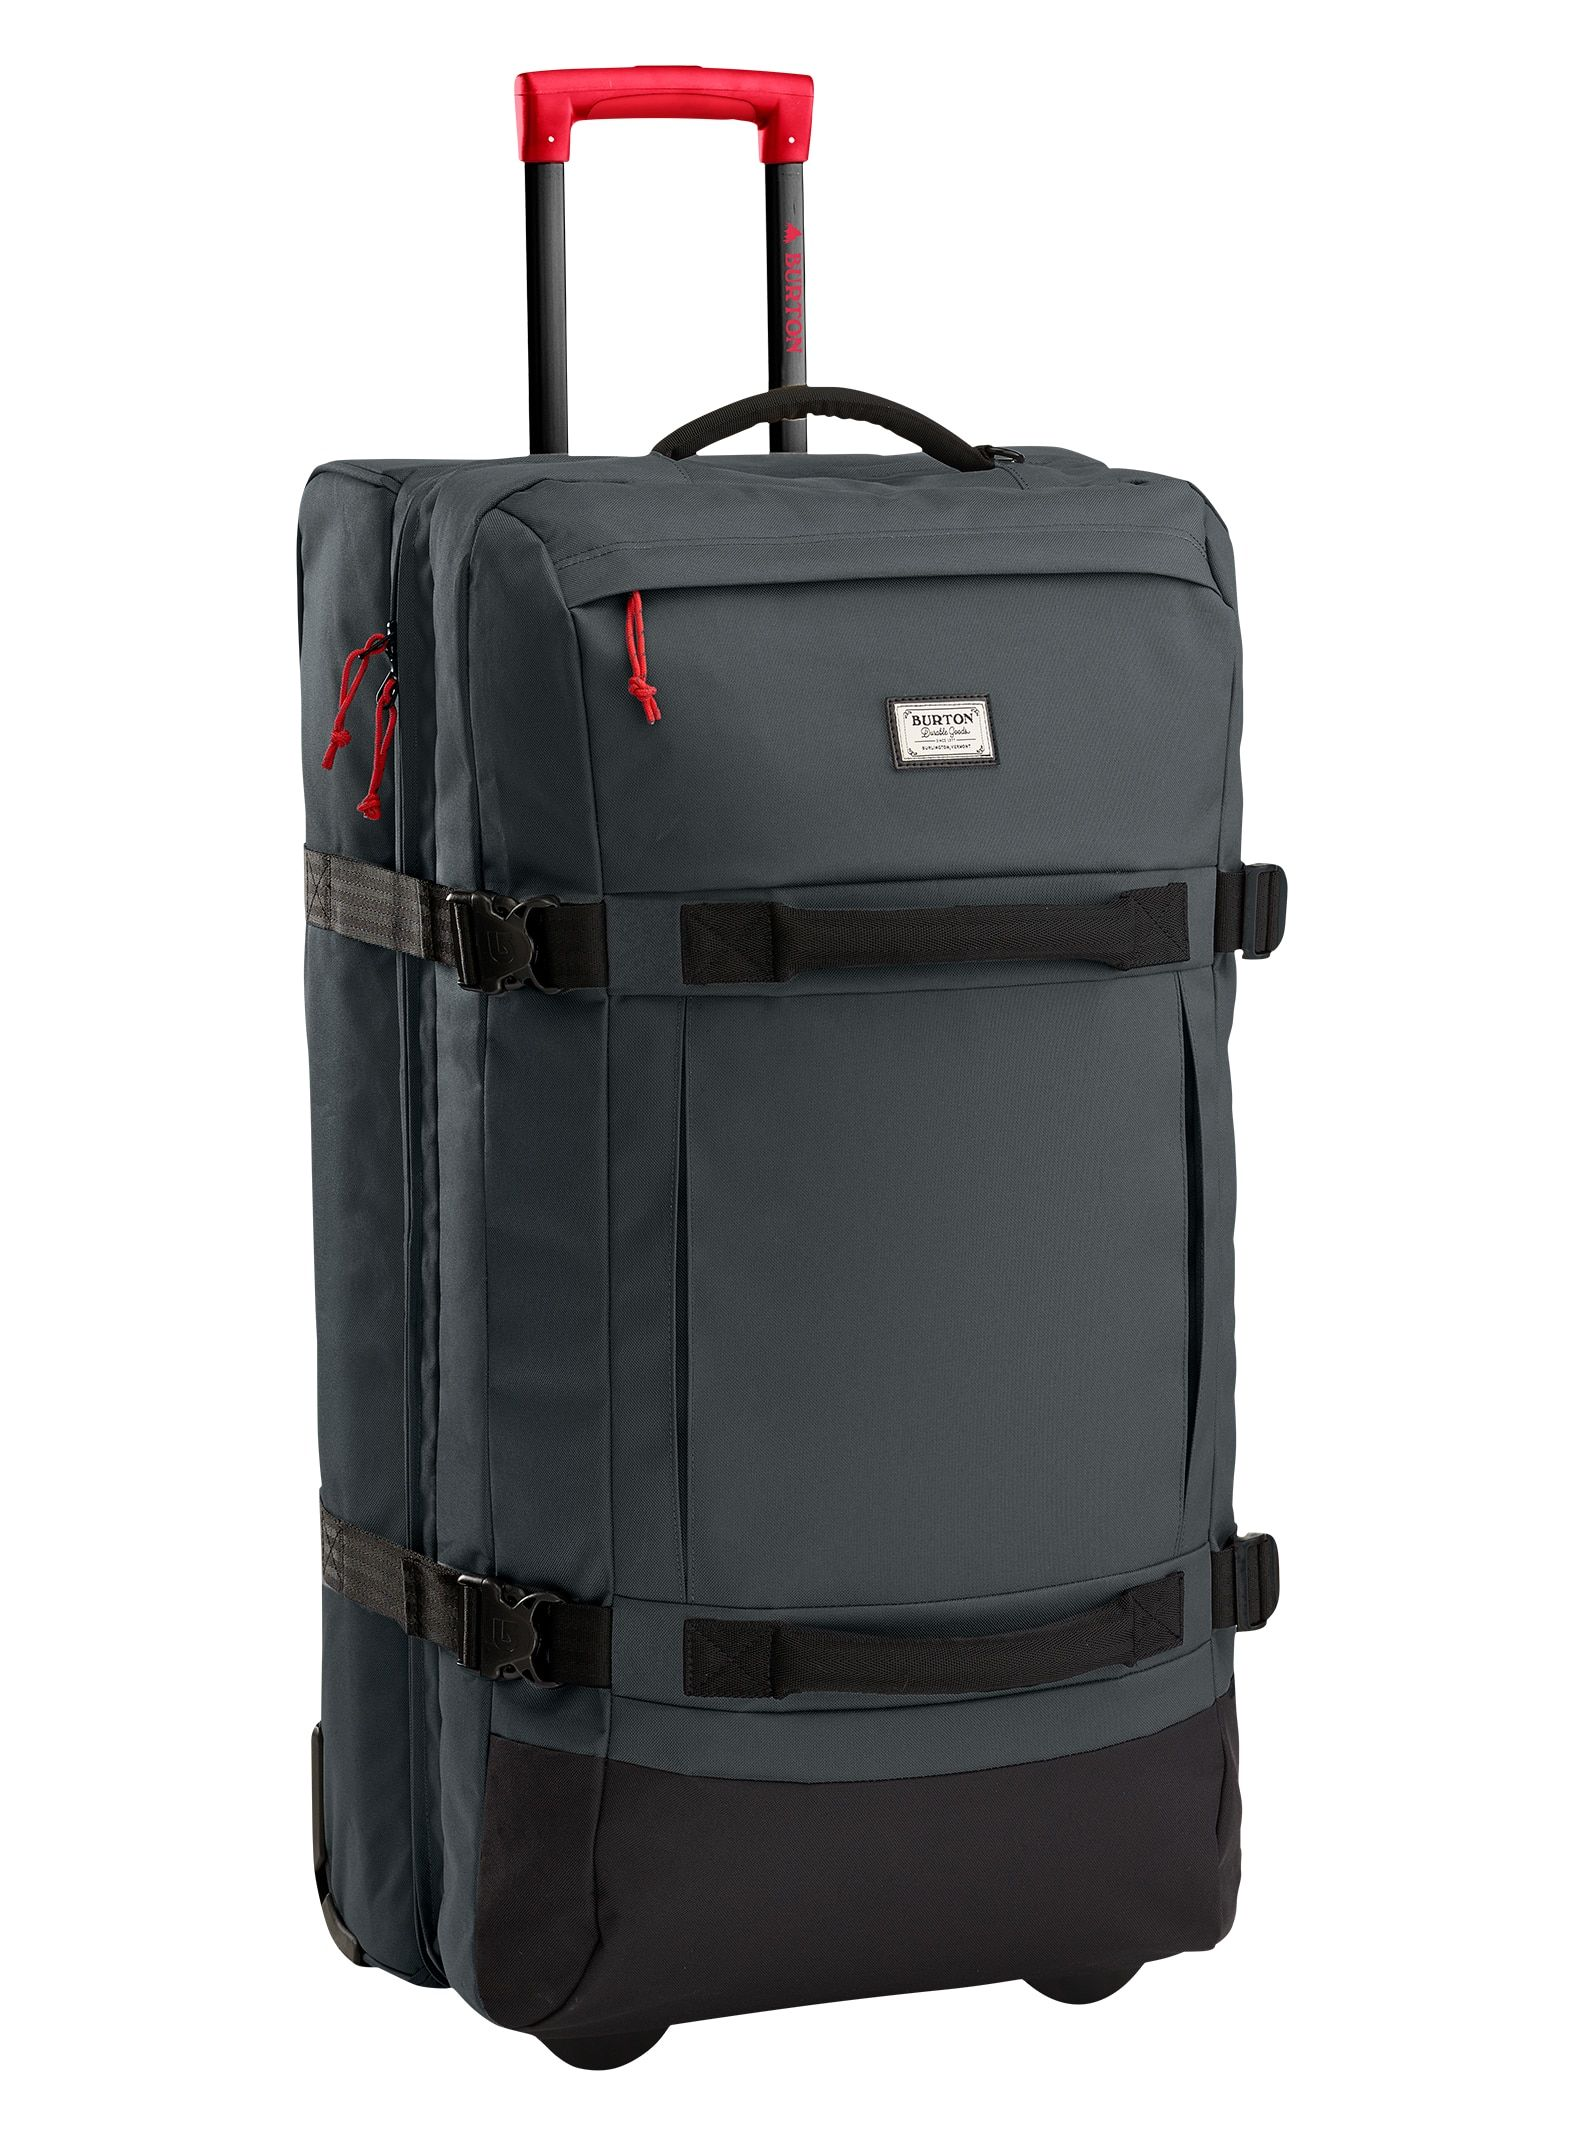 bcfc11695d Burton Exodus Roller Travel Bag in 2019 | Products | Travel bags ...